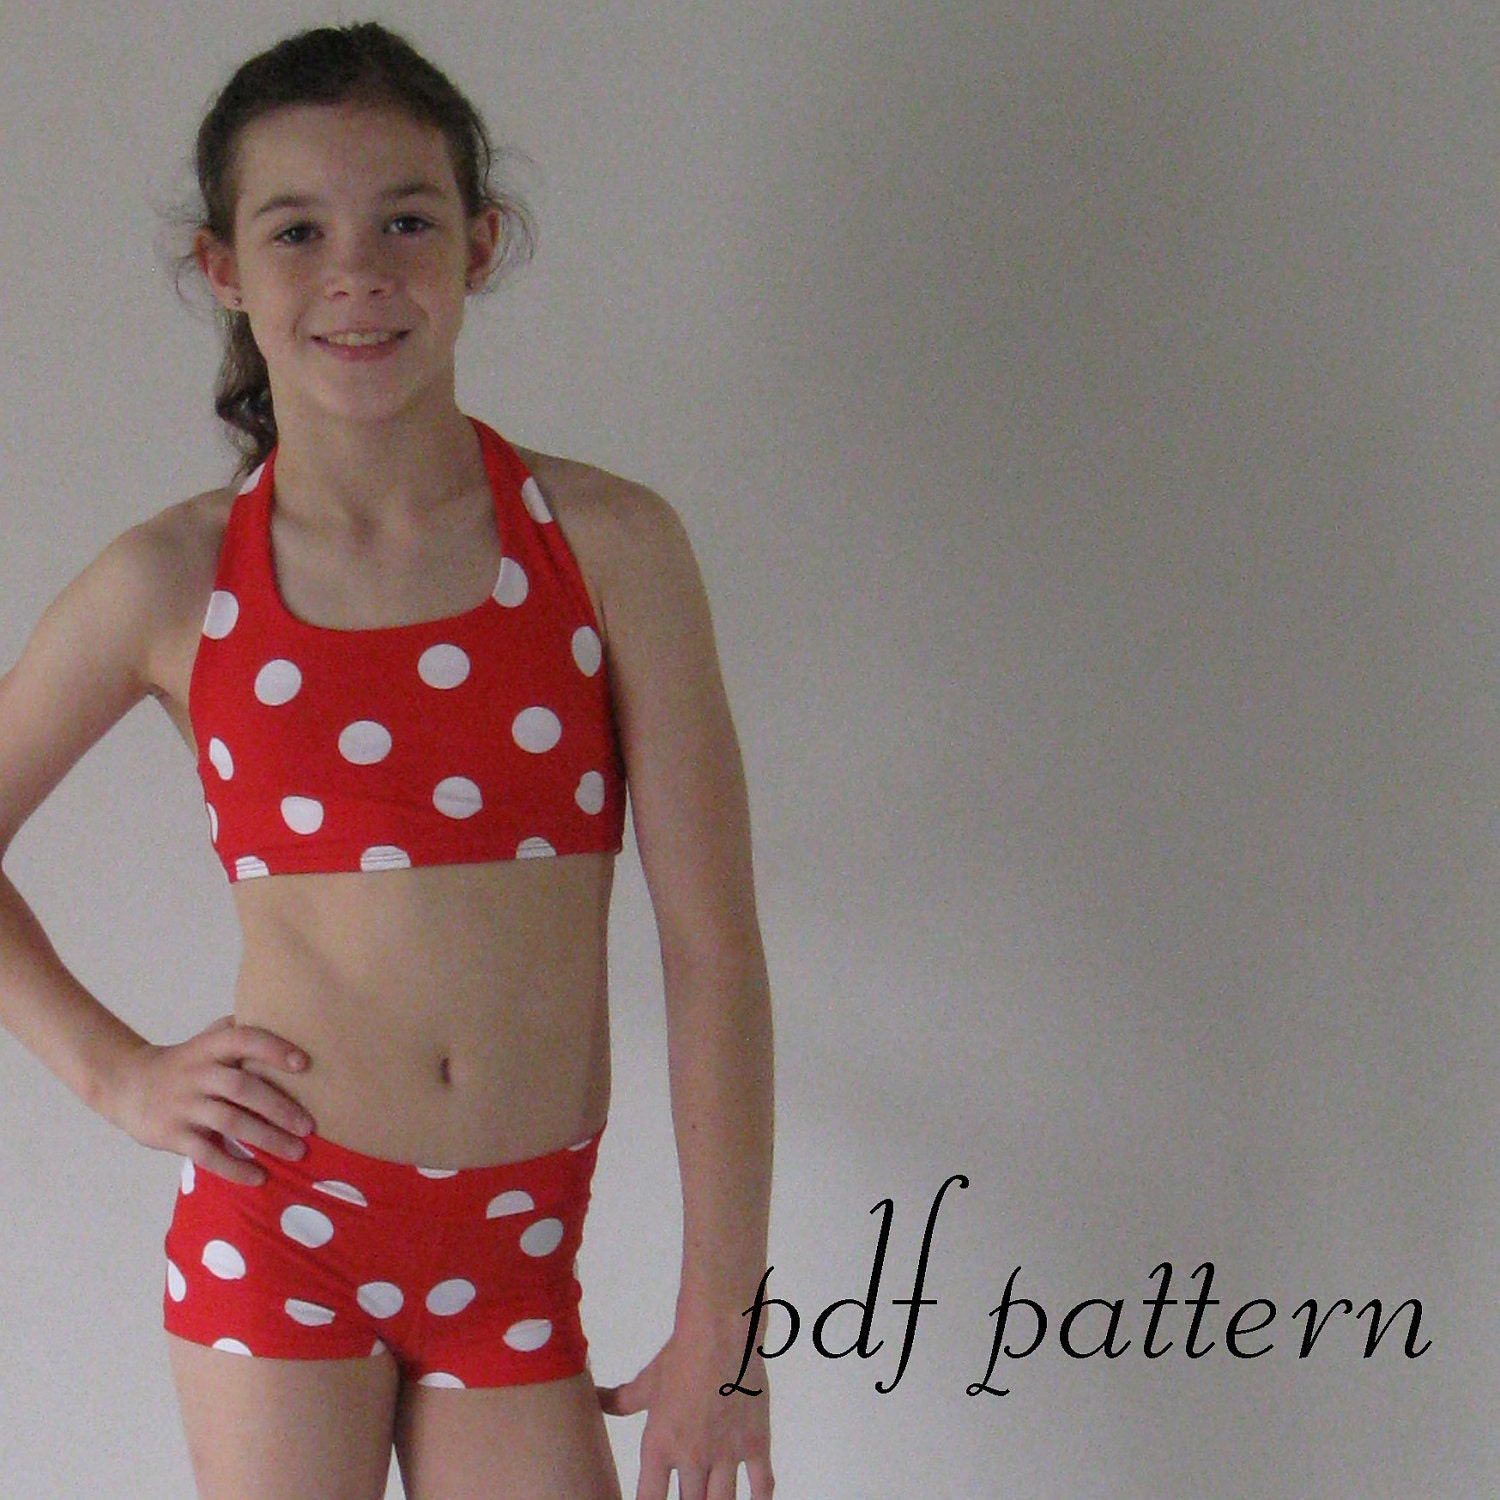 gallery for 12 year old girl bathing suit displaying 19 images for 12